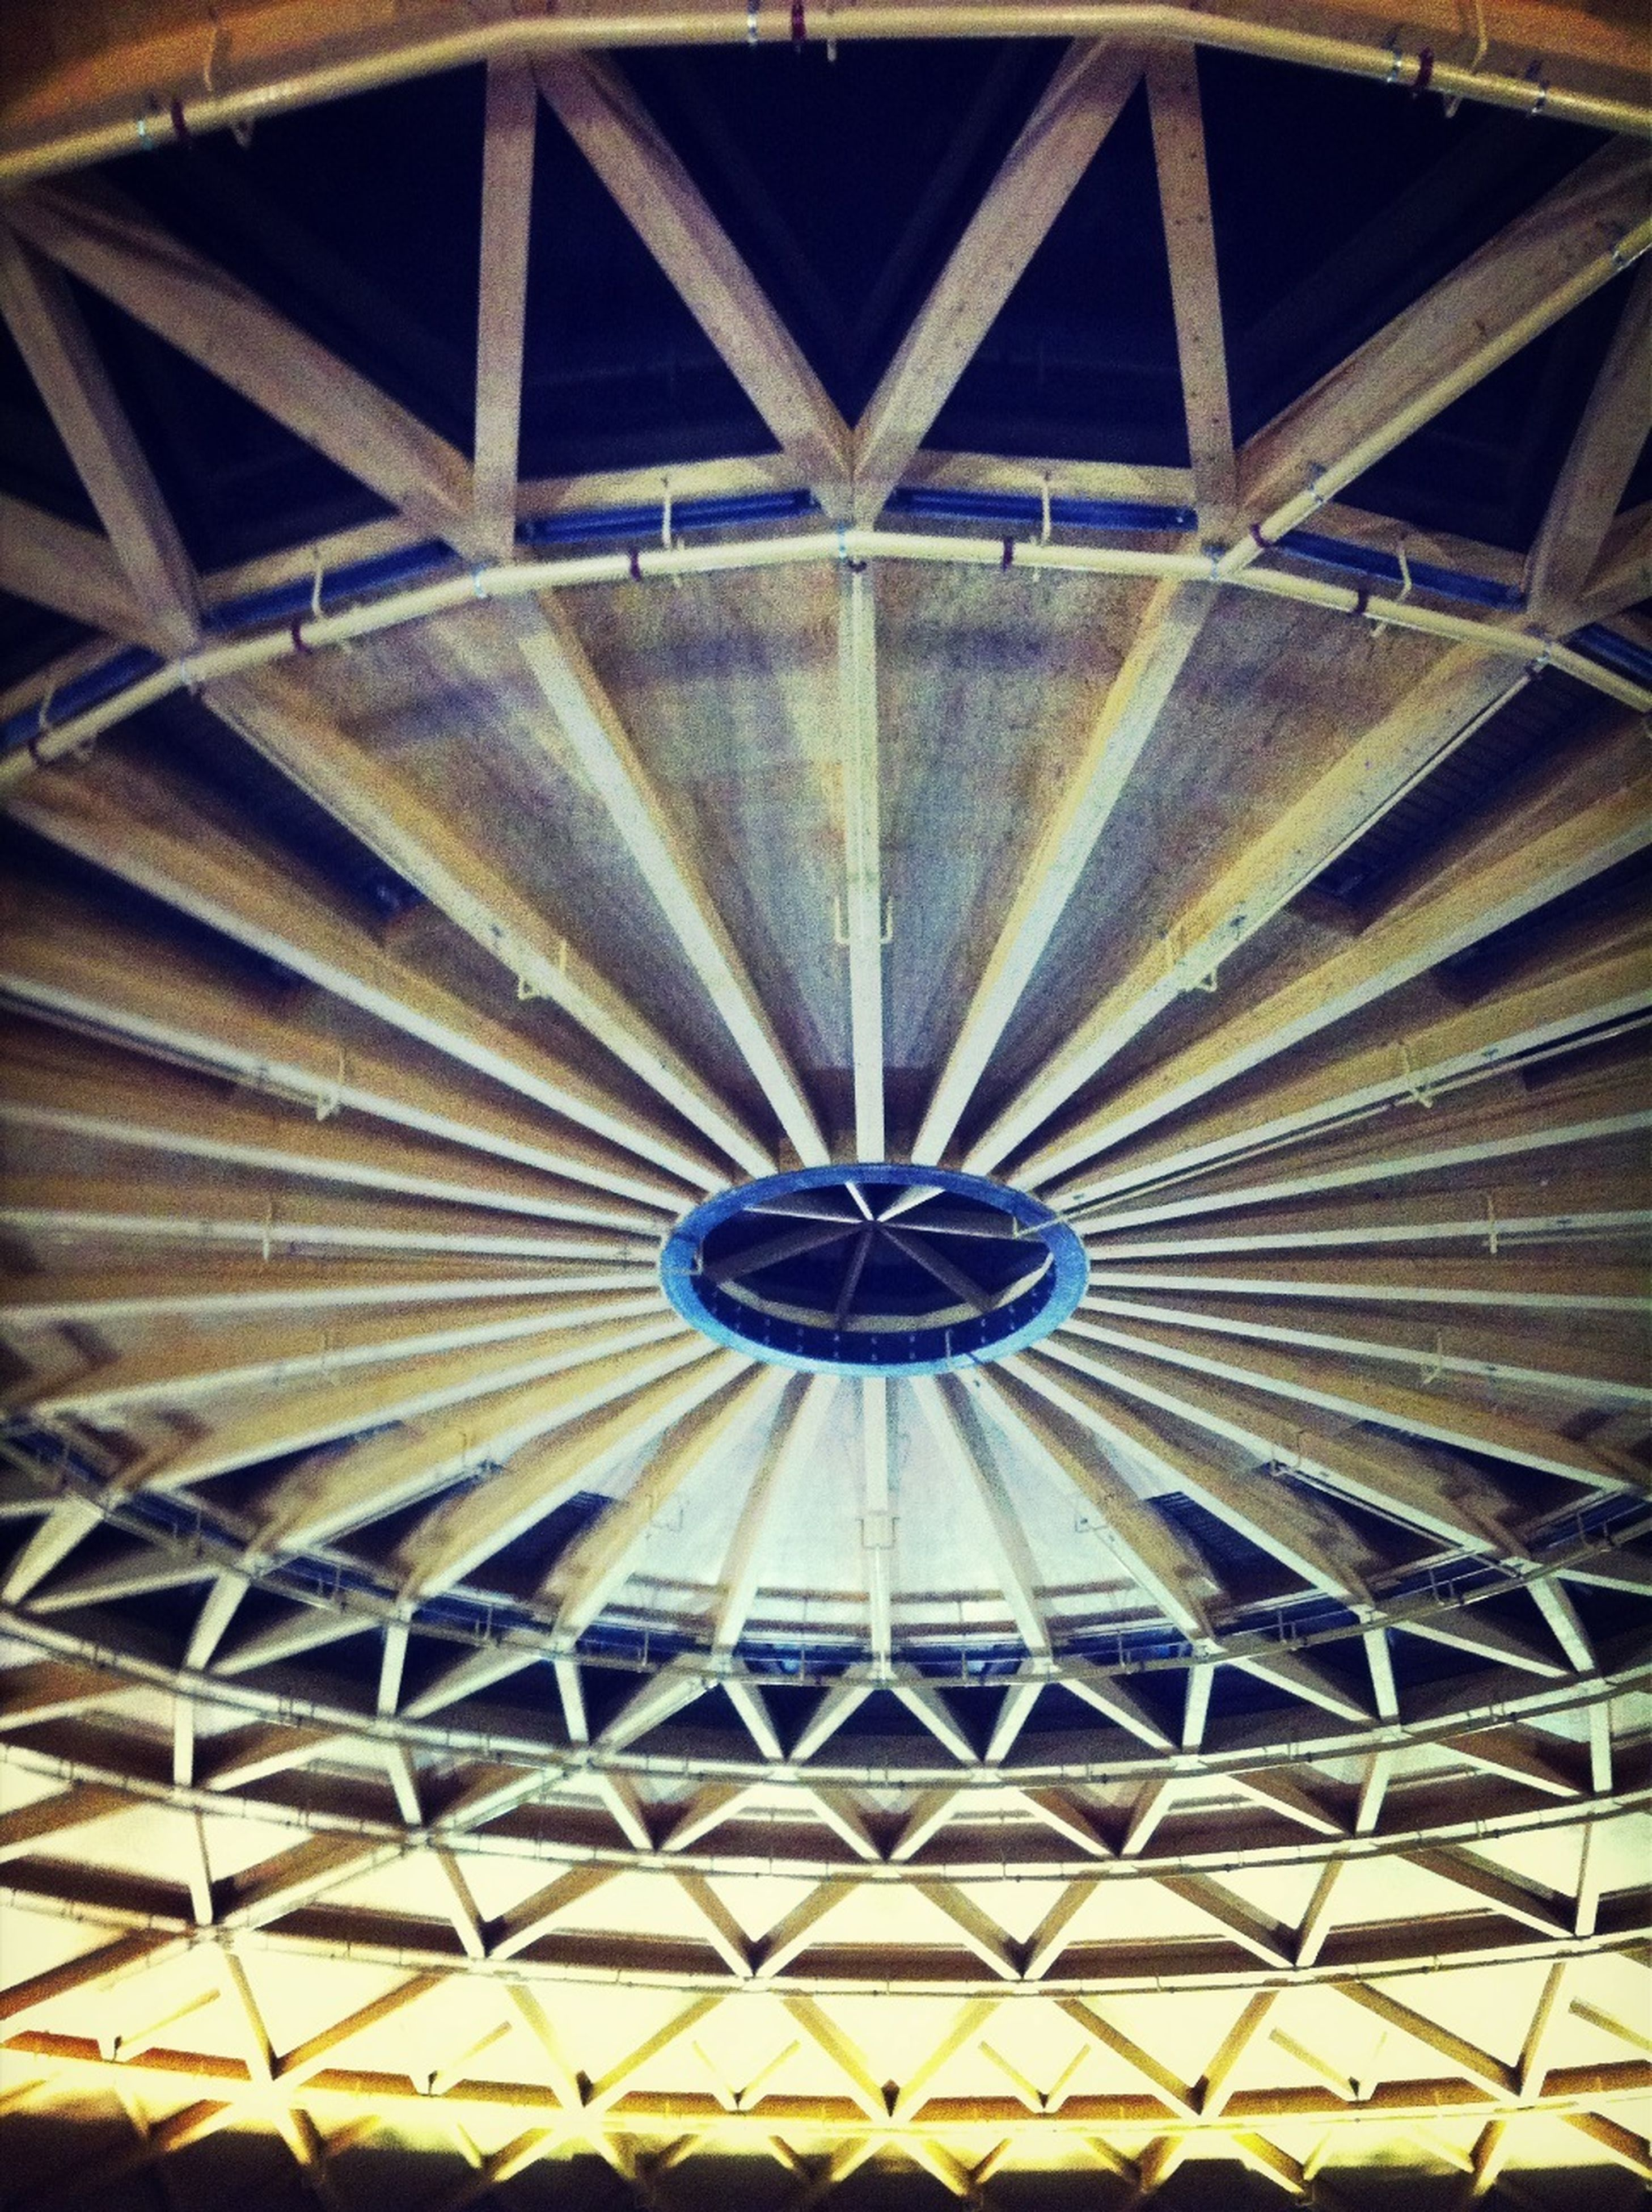 ceiling, architecture, built structure, pattern, low angle view, design, indoors, full frame, backgrounds, directly below, architectural feature, circle, geometric shape, dome, shape, repetition, no people, building exterior, ornate, skylight